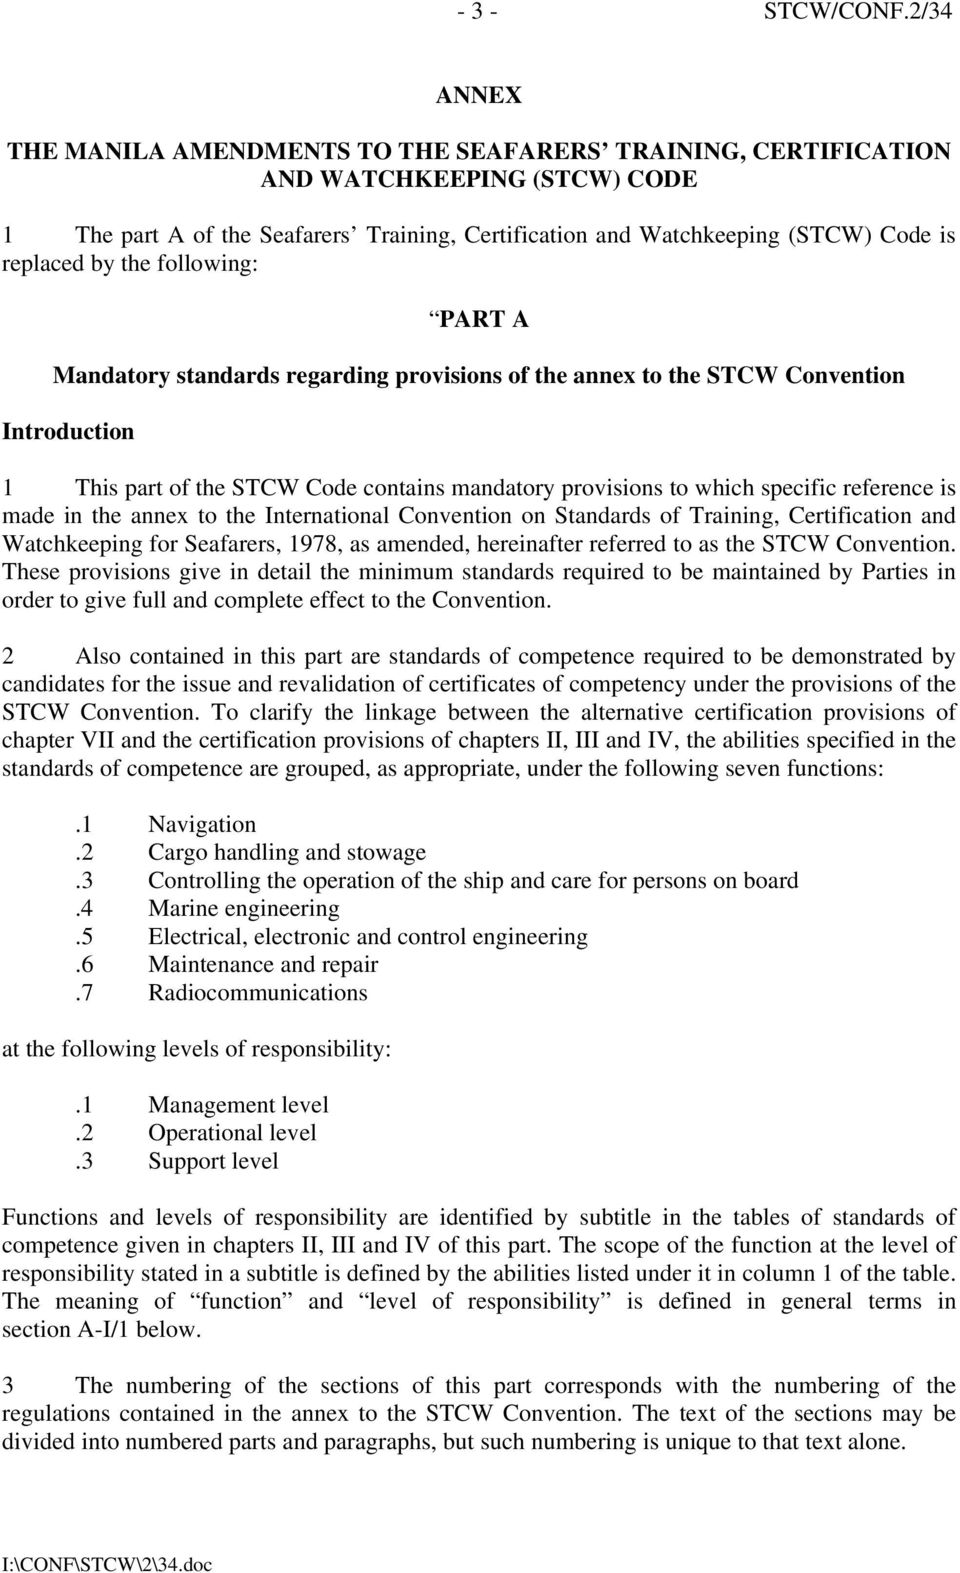 by the following: PART A Mandatory standards regarding provisions of the annex to the STCW Convention Introduction 1 This part of the STCW Code contains mandatory provisions to which specific